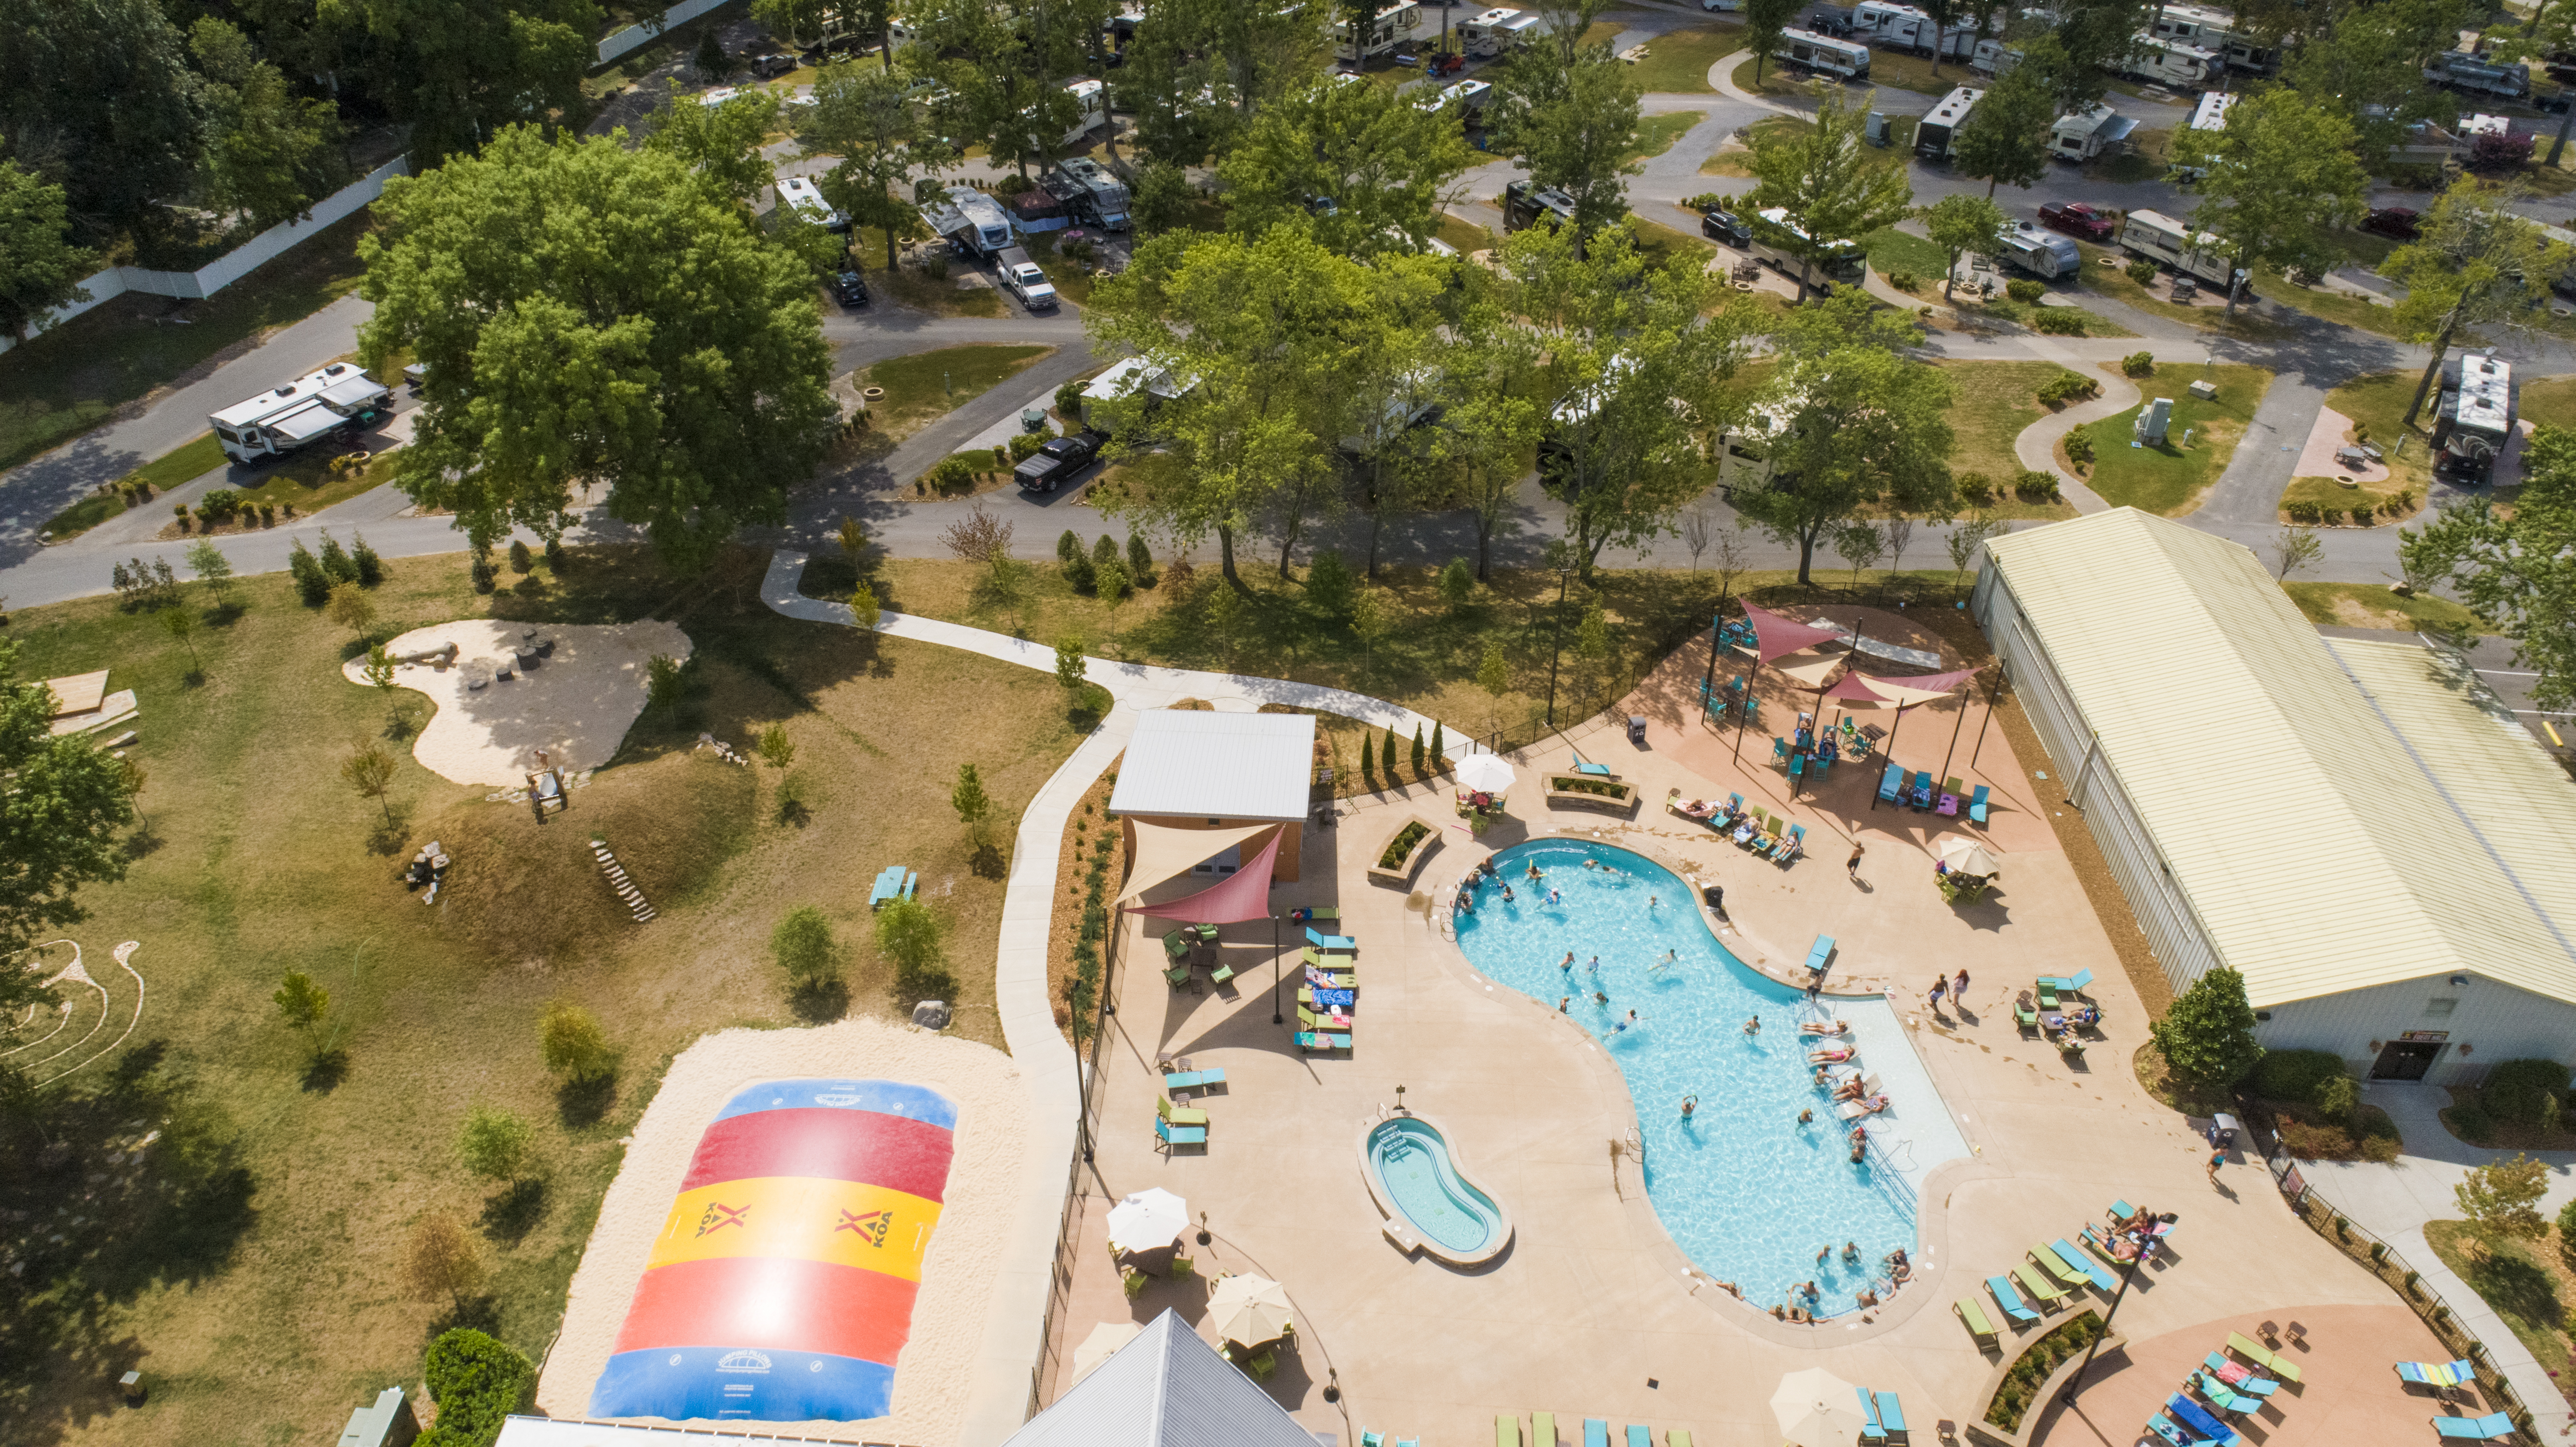 Our beautiful pool and campground